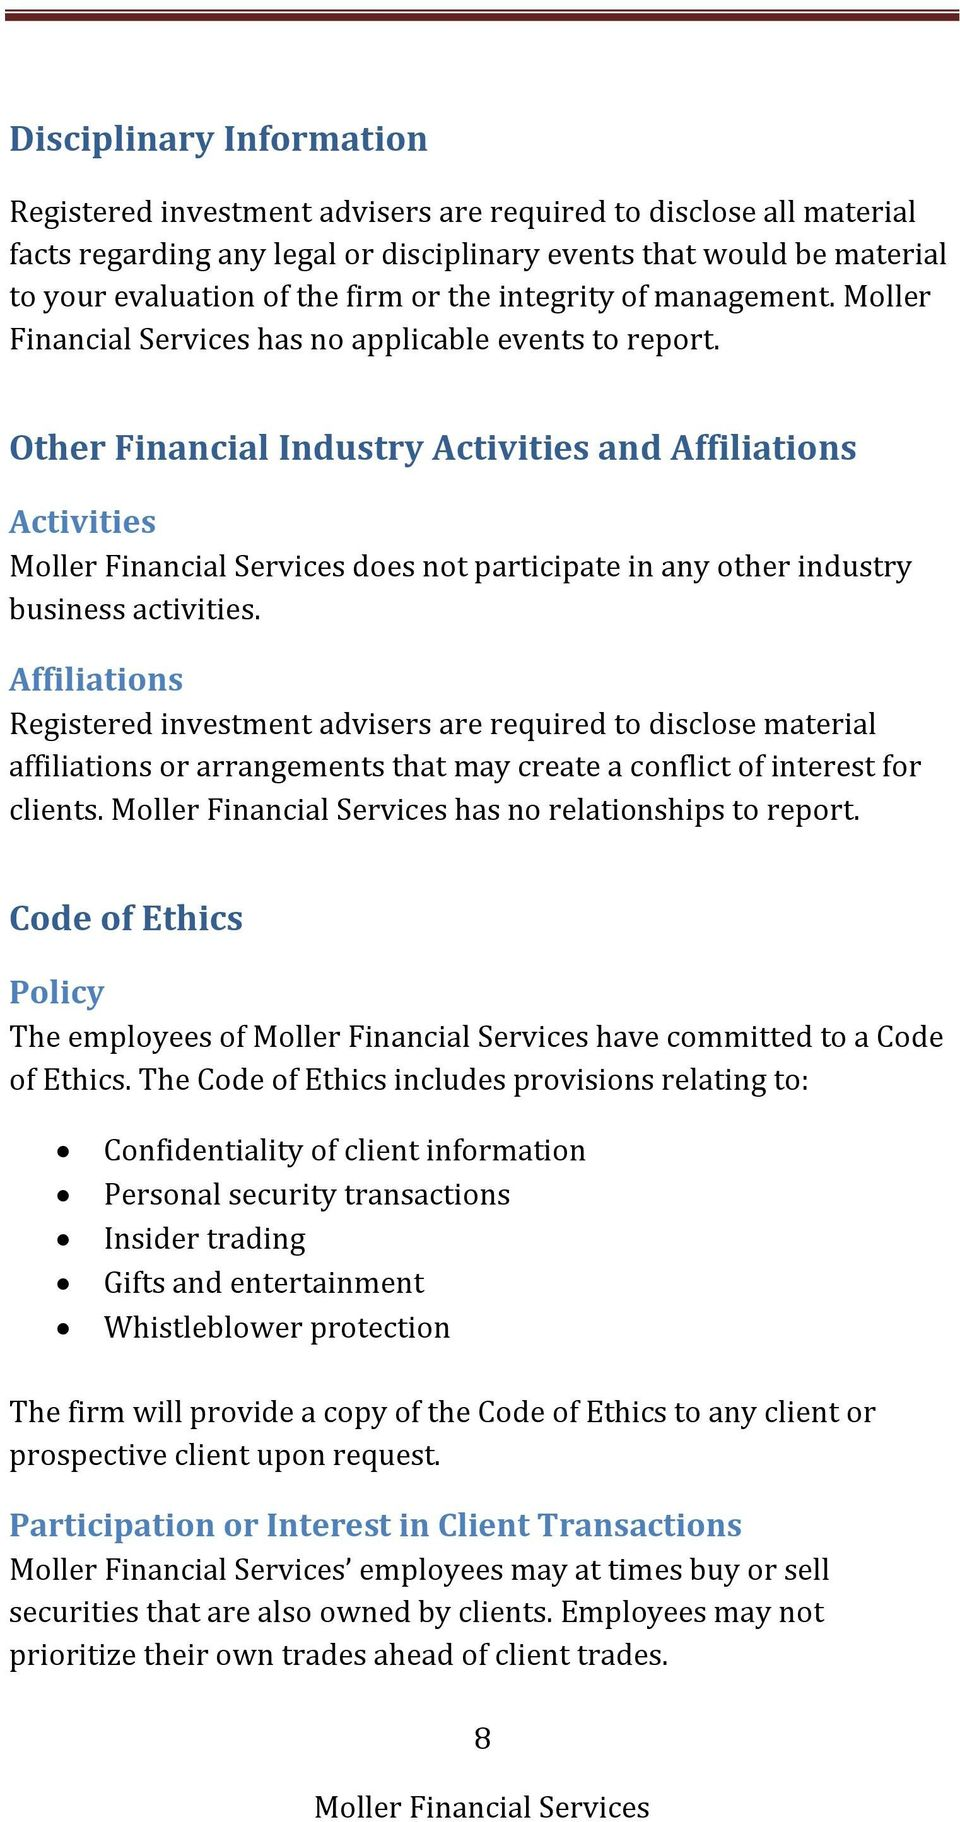 Other Financial Industry Activities and Affiliations Activities does not participate in any other industry business activities.